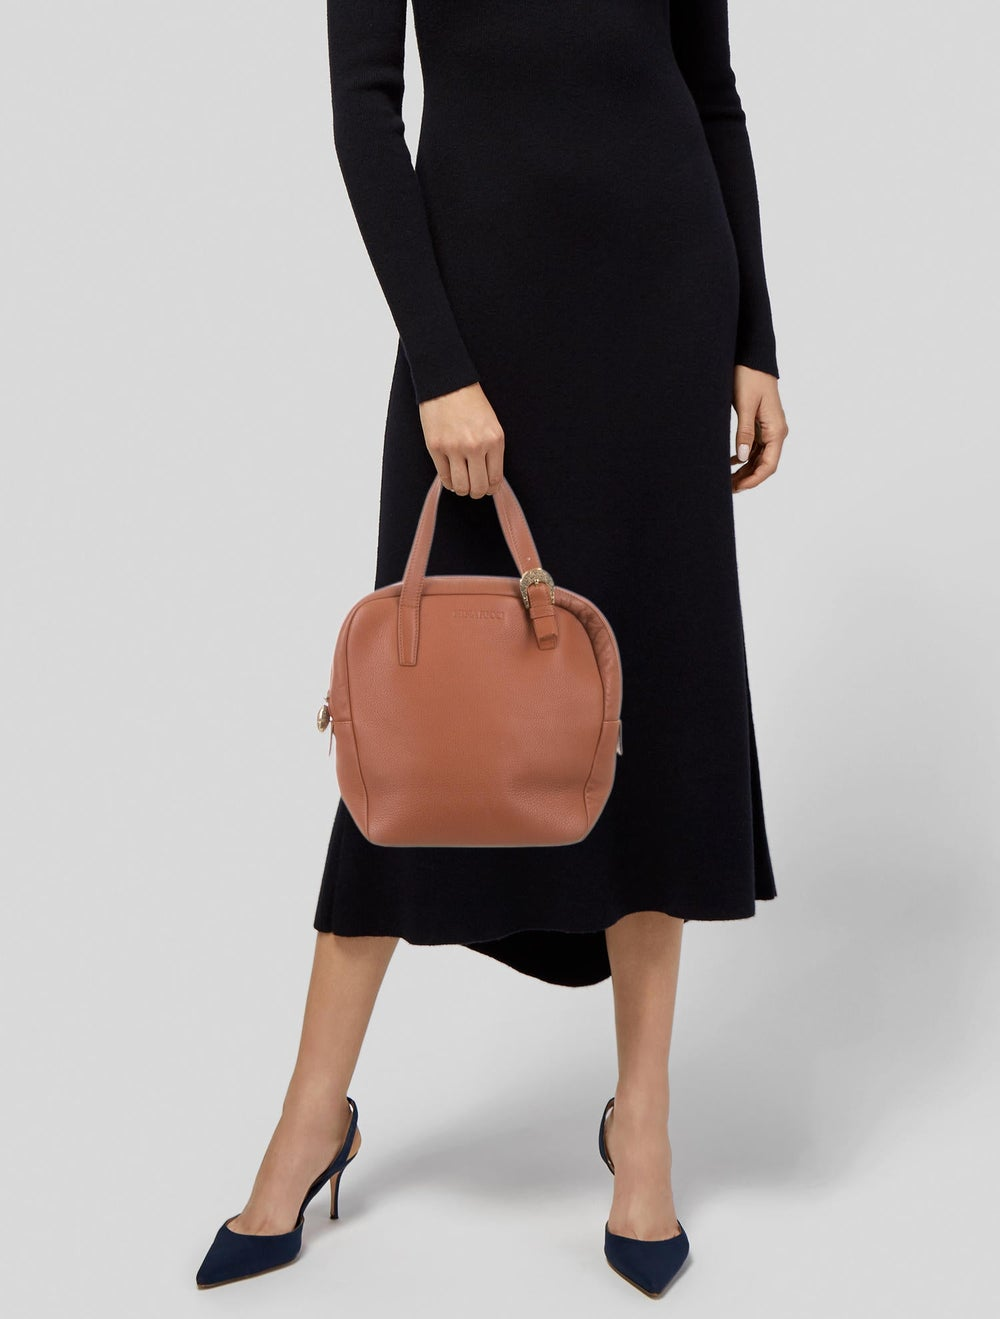 Nina Ricci Leather Handle Bag Brown - image 2